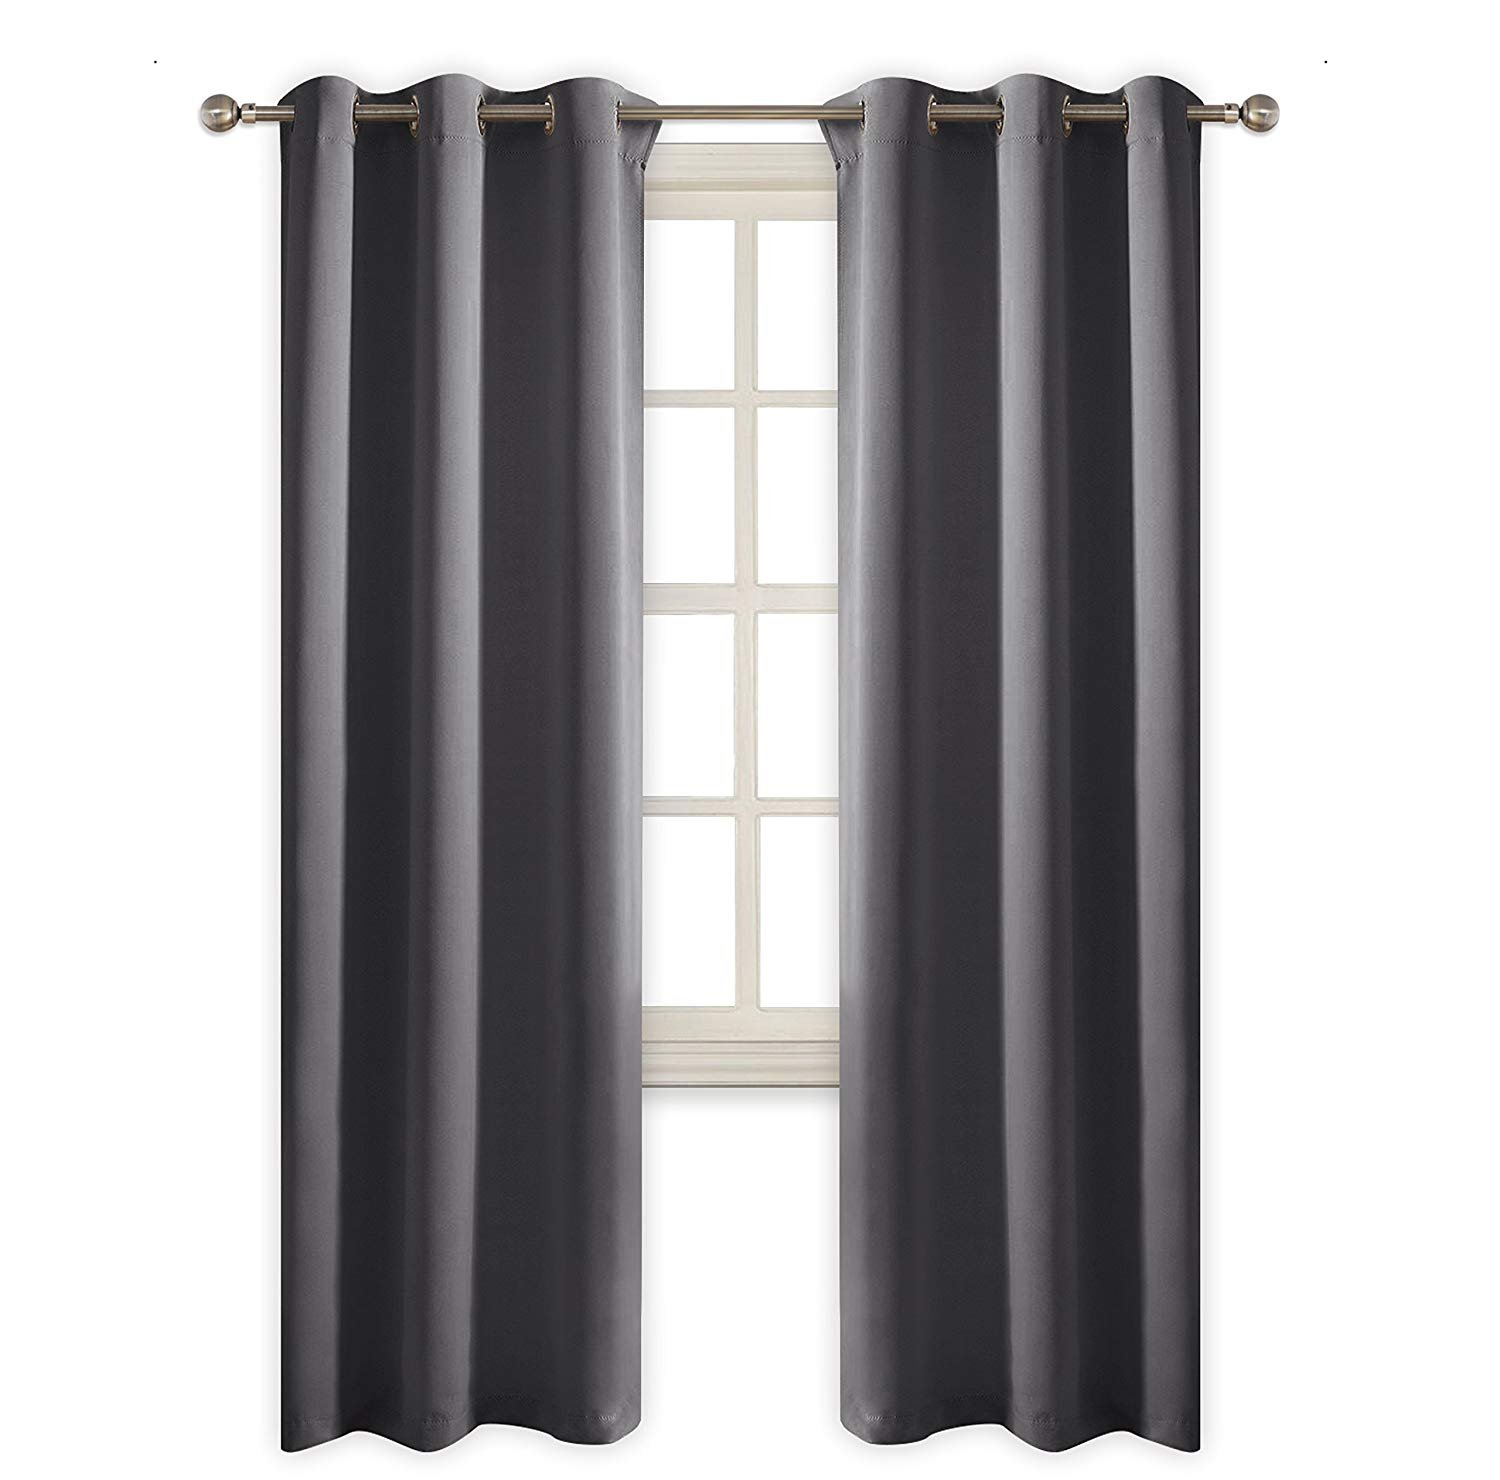 Window Treatment Blackout Curtains, ADSRO 2 Panel Room Curtains Armrests Top Shading Insulation Room Bedroom/Living Room Curtains Size 42 x 45 inch (Grey)